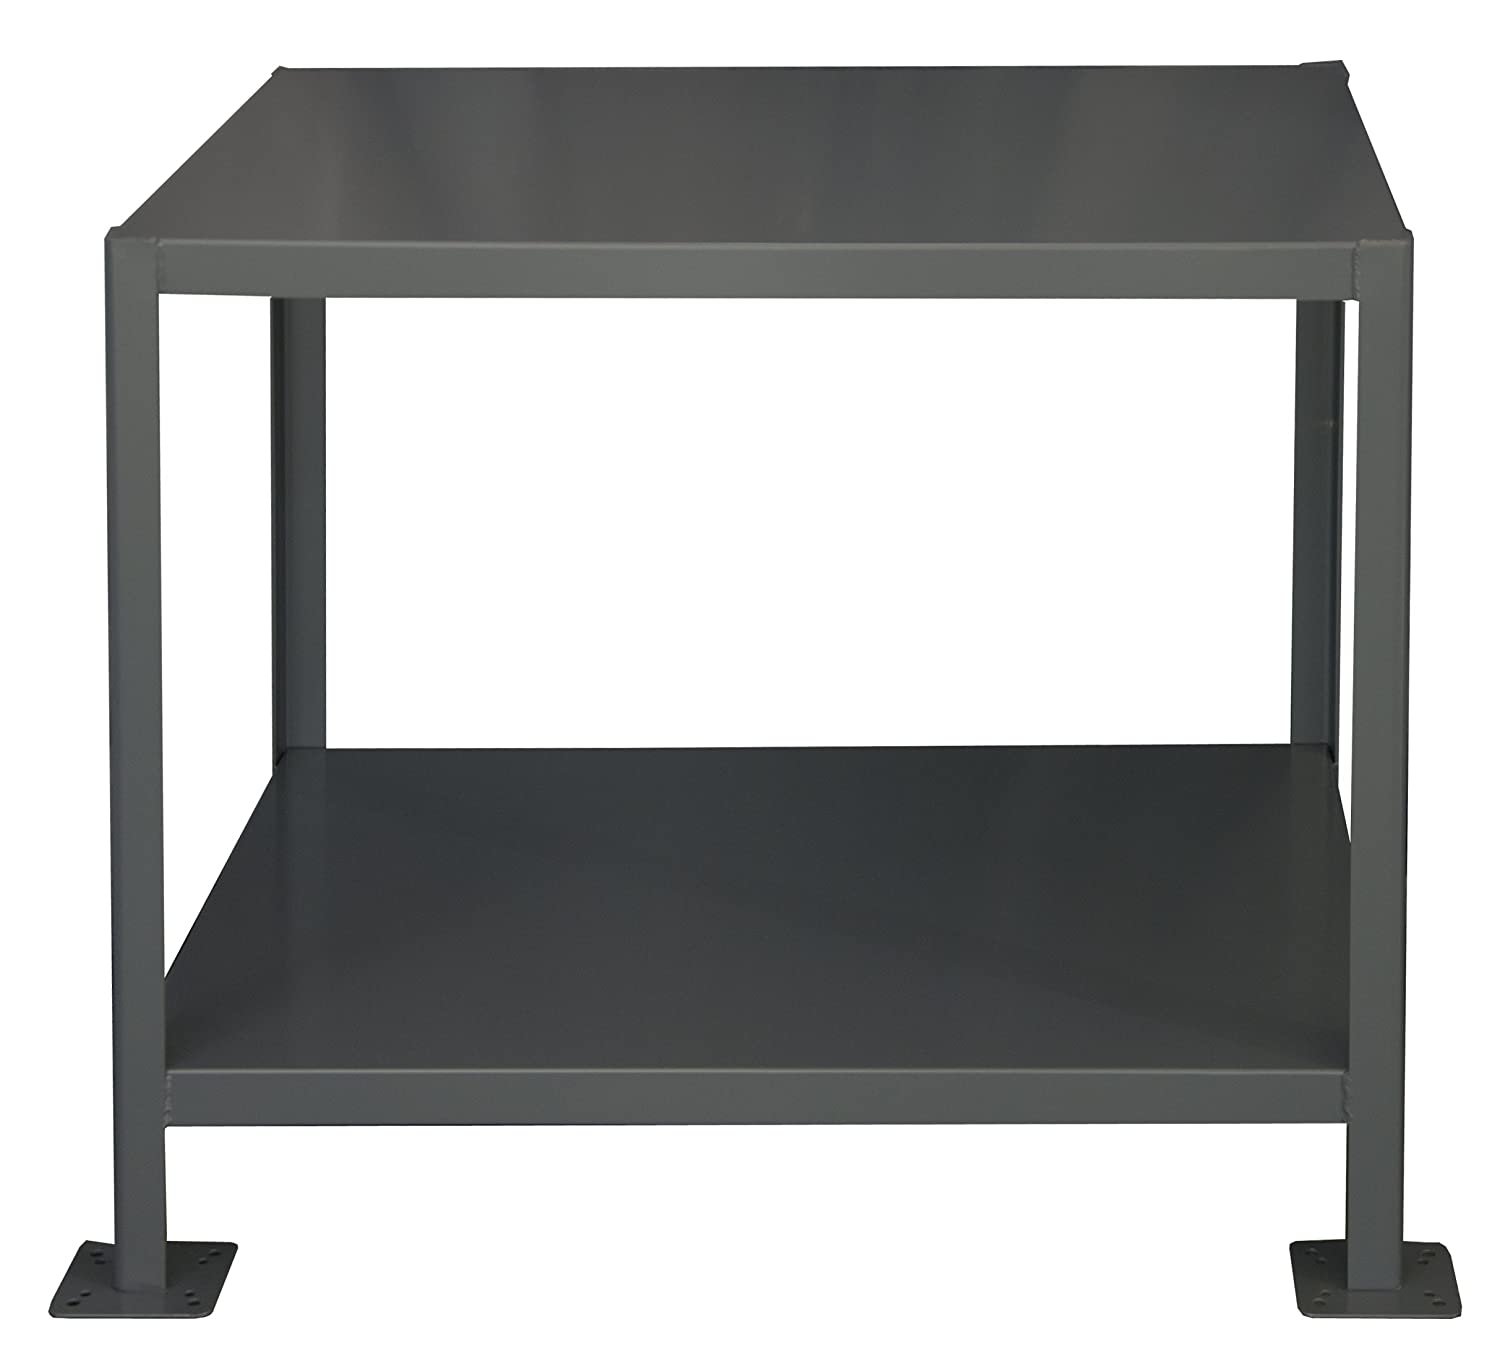 Durham steel heavy duty machine table mt304836 3k295 2 shelves durham steel heavy duty machine table mt304836 3k295 2 shelves 3000 lbs capacity 48 length x 30 width x 36 height science lab benches amazon geotapseo Images